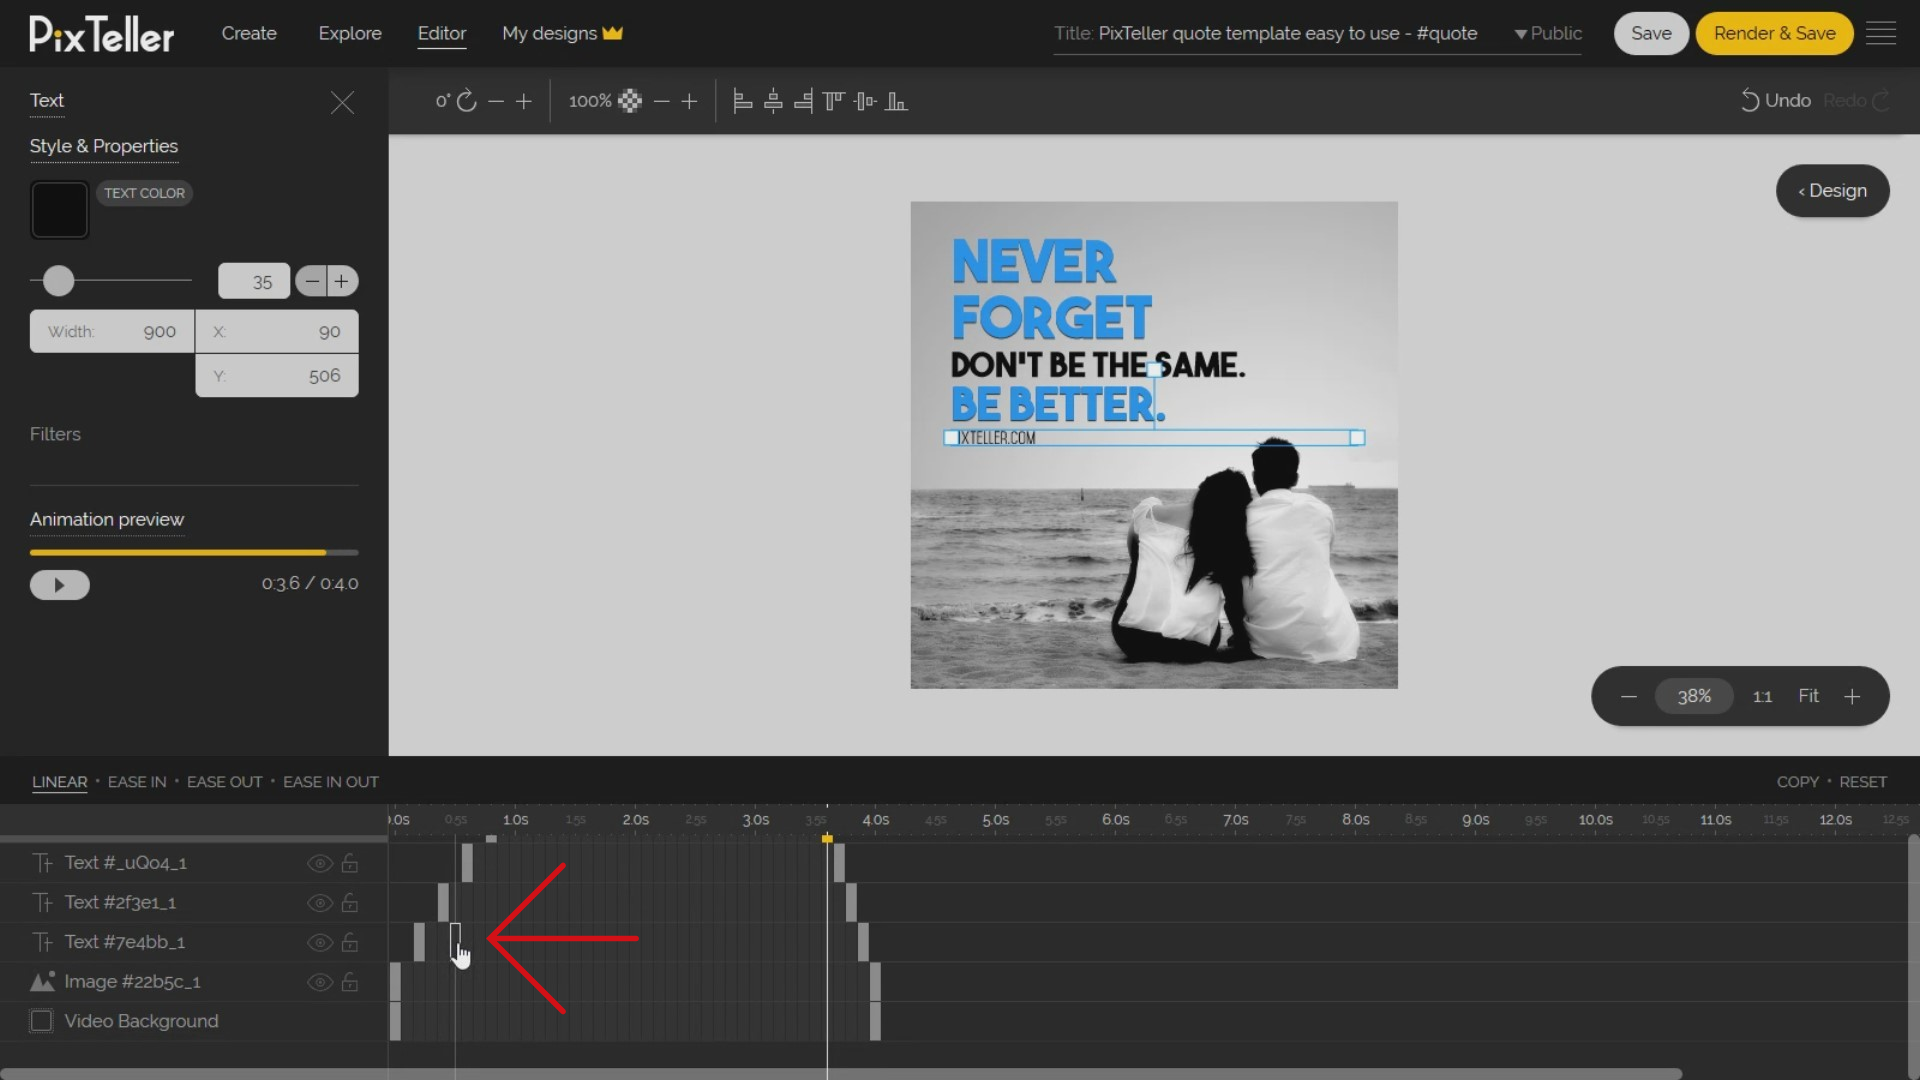 How to create the instances in Animation Mode